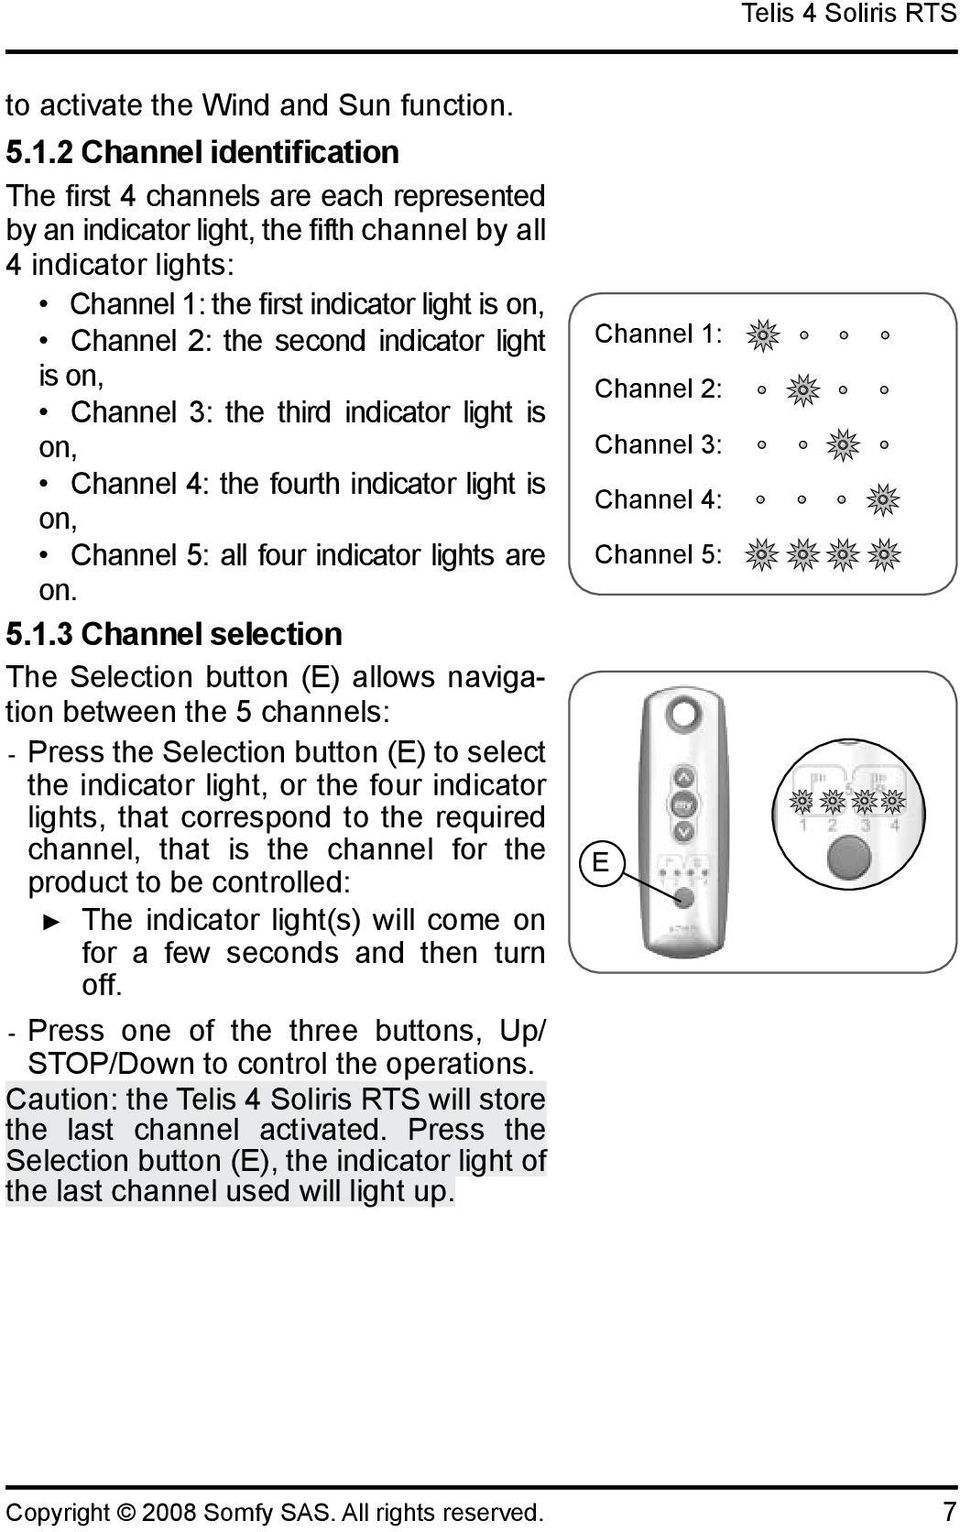 second indicator light is on, Channel 3: the third indicator light is on, Channel 4: the fourth indicator light is on, Channel 5: all four indicator lights are on. 5.1.